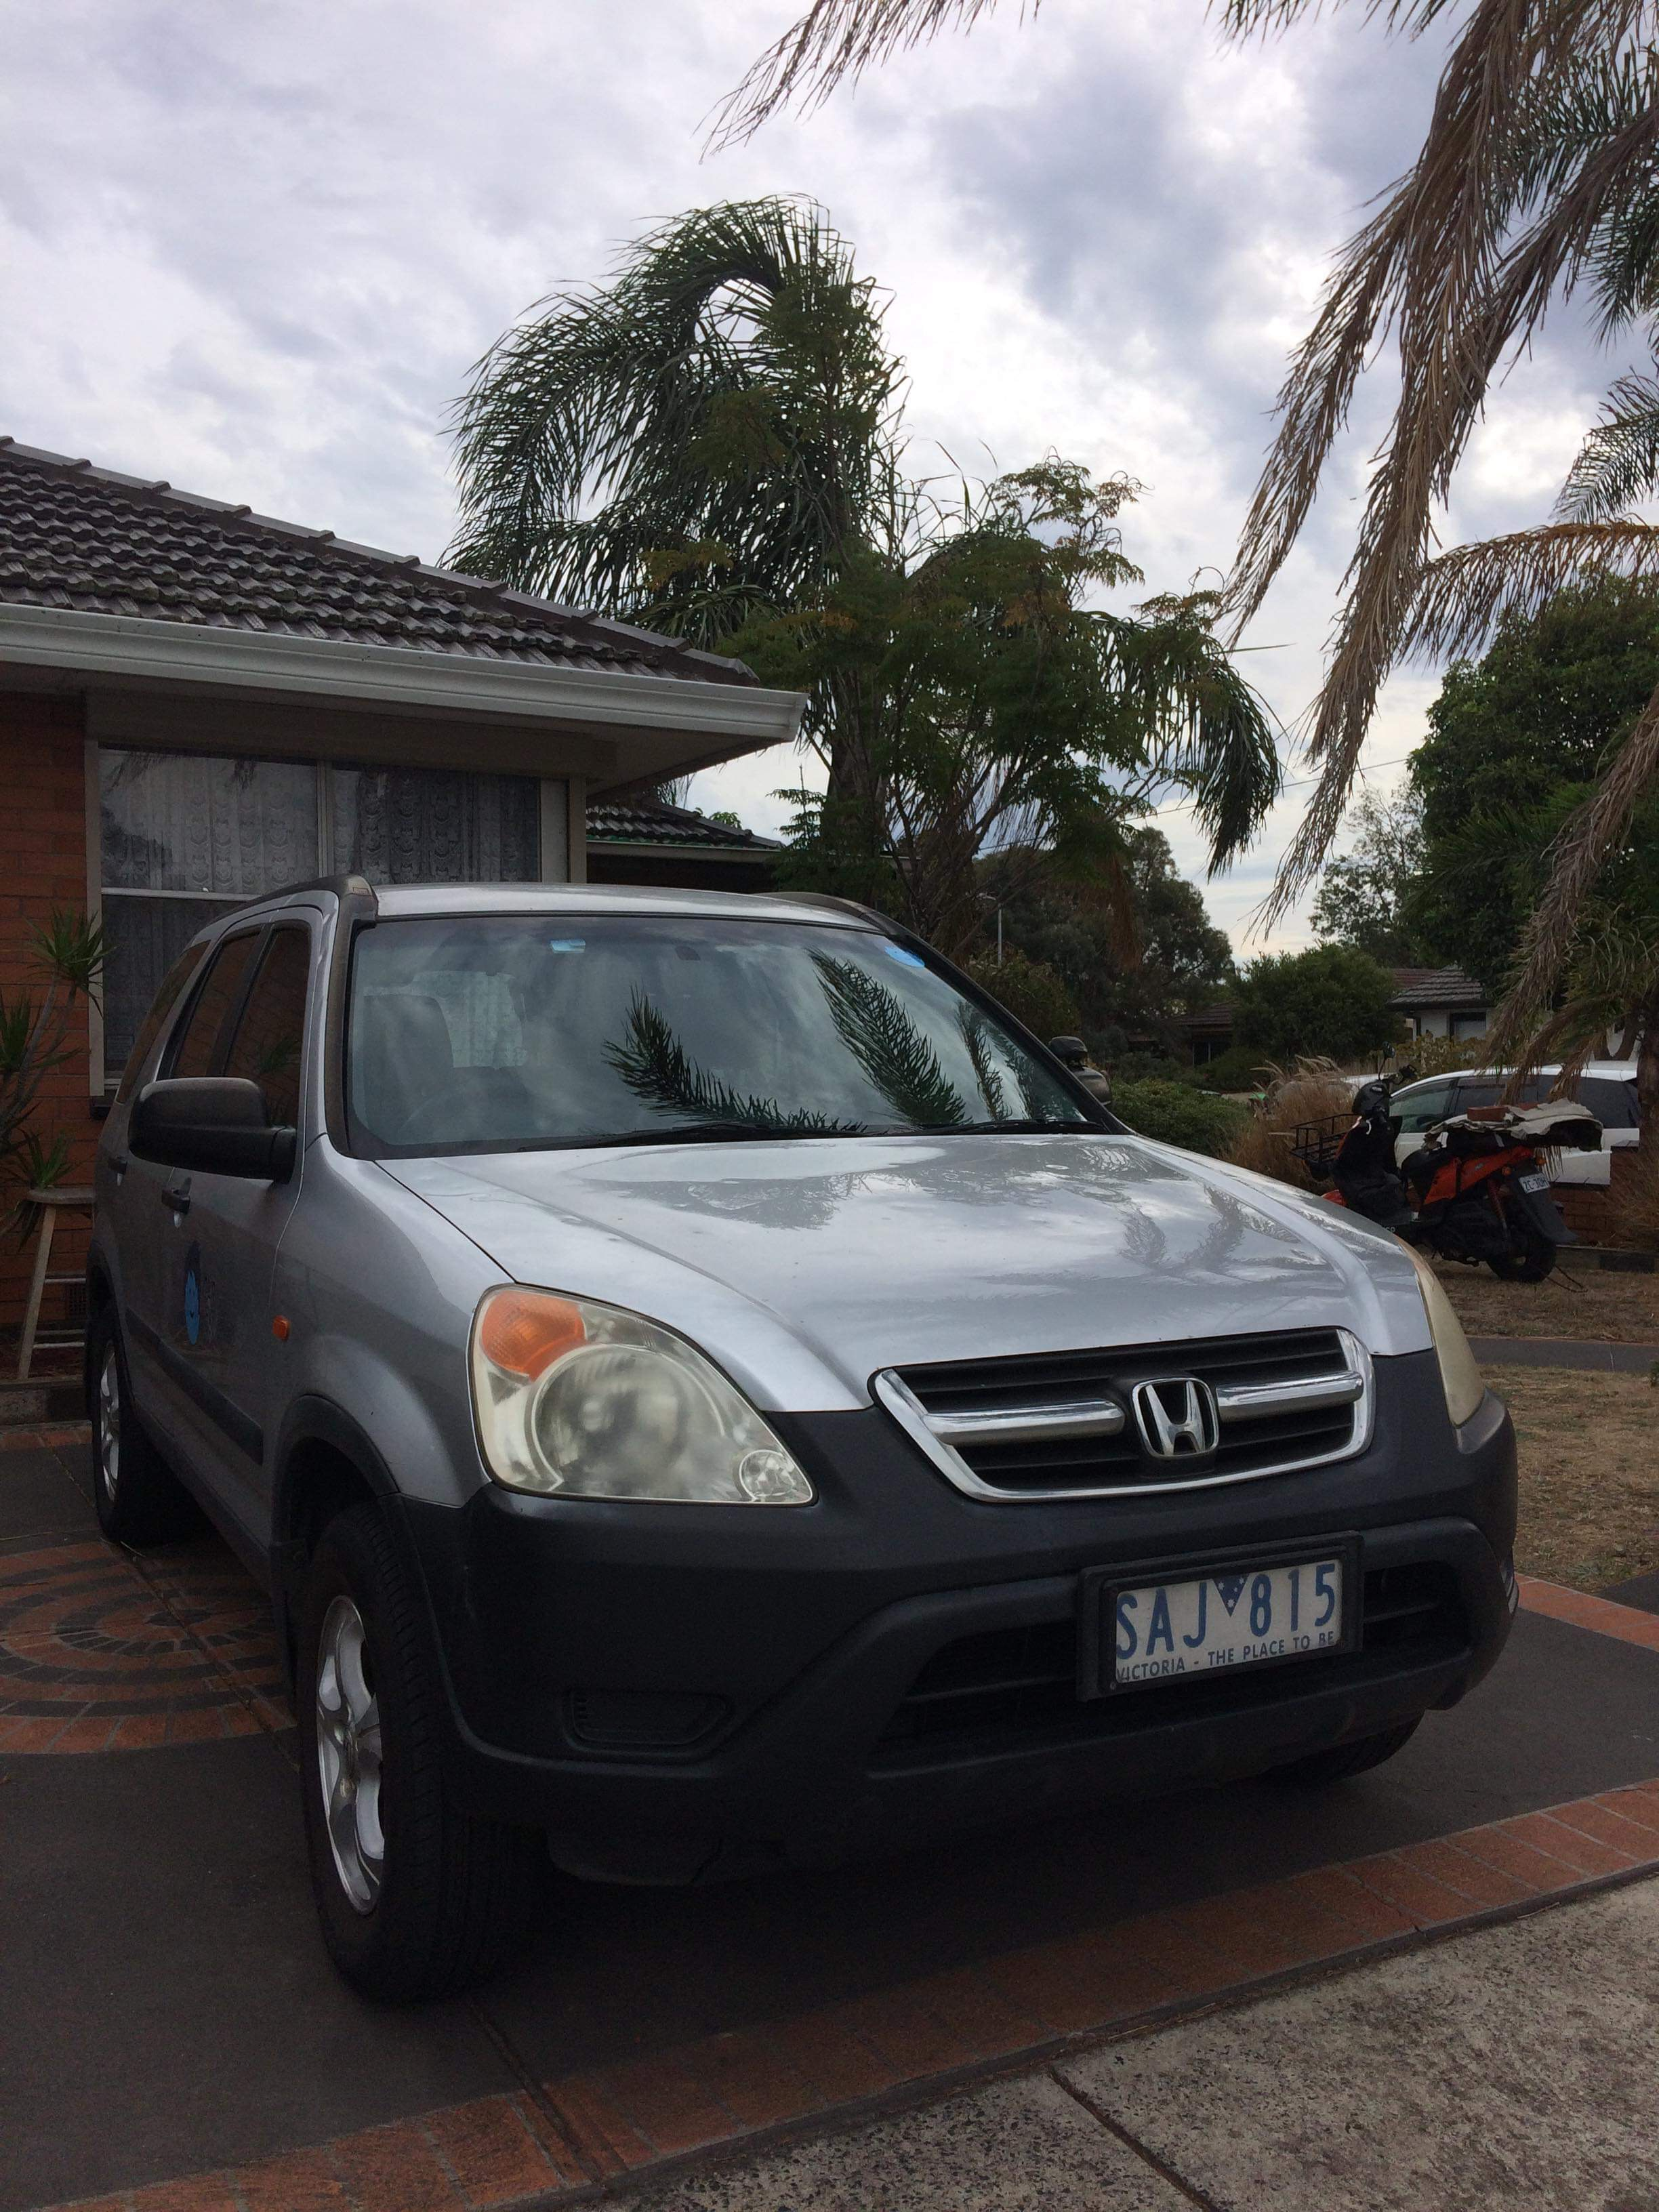 Picture of Quoc K T's 2002 Honda CR-V